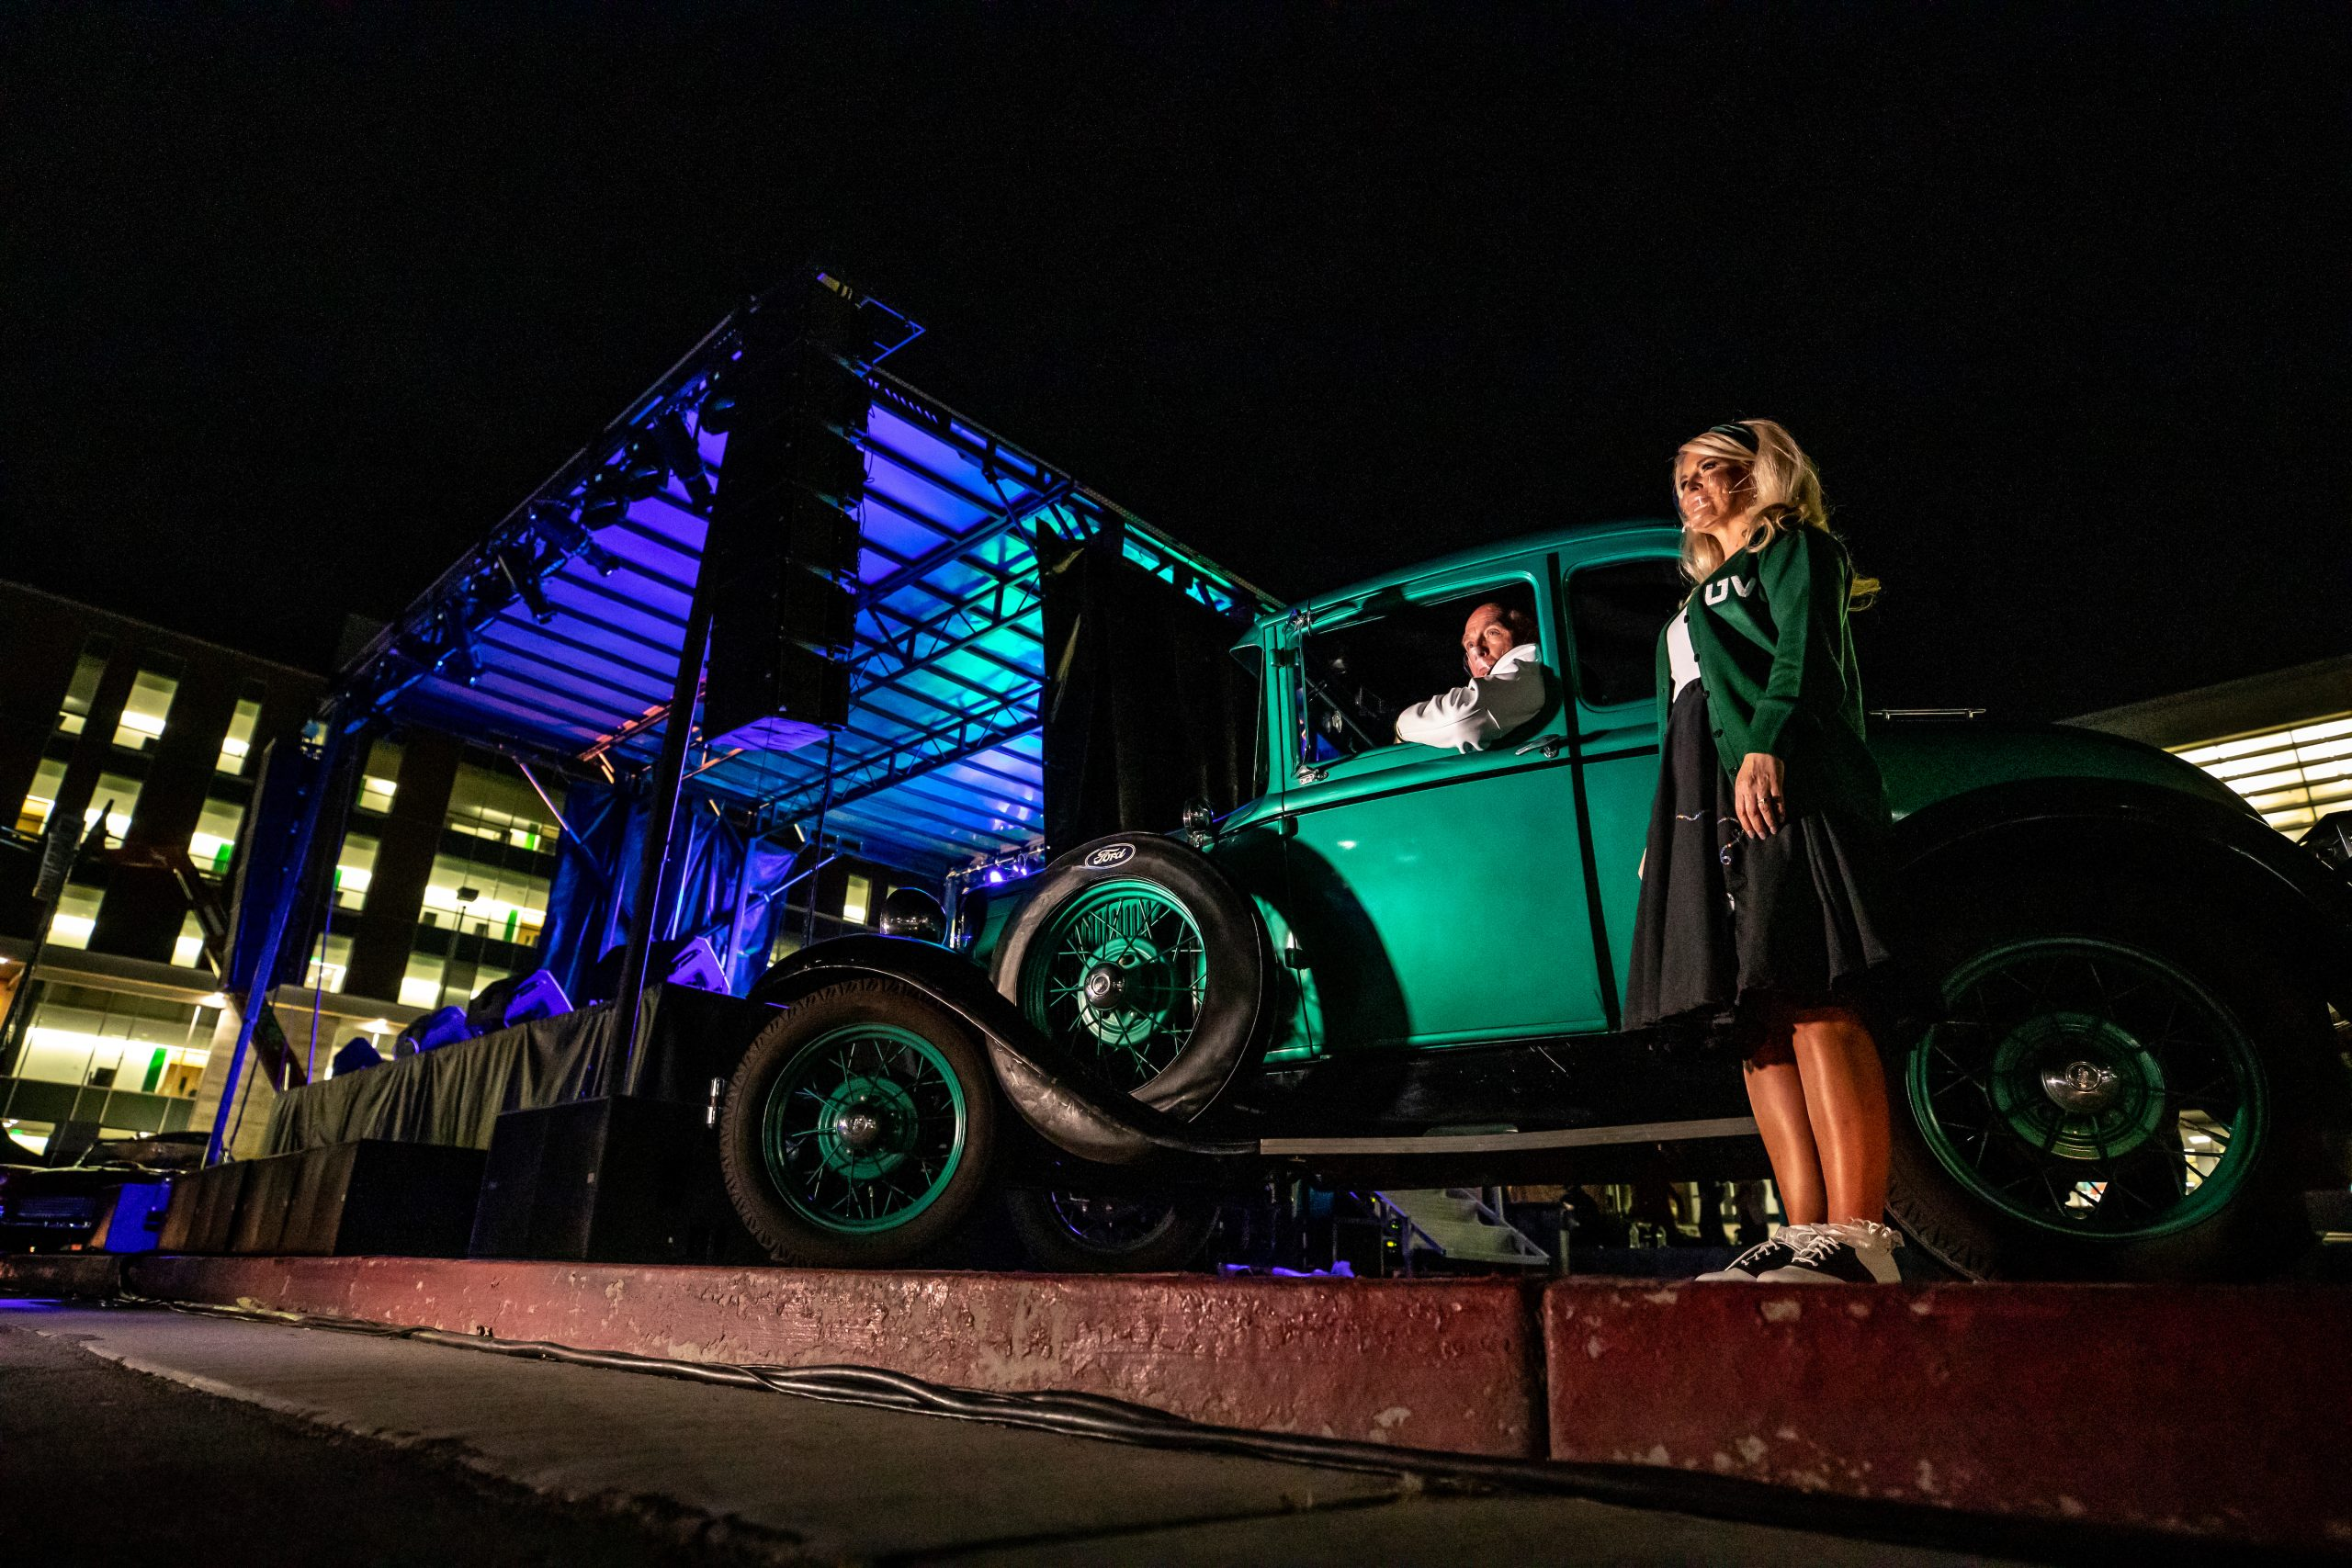 Utah Valley University holds the annual Presidential Scholarship Ball as a pandemic inspired drive-in themed presentation in the library parking lot on the UVU campus in Orem, Utah Saturday, September 26, 2020. (Jay Drowns / UVU Marketing)